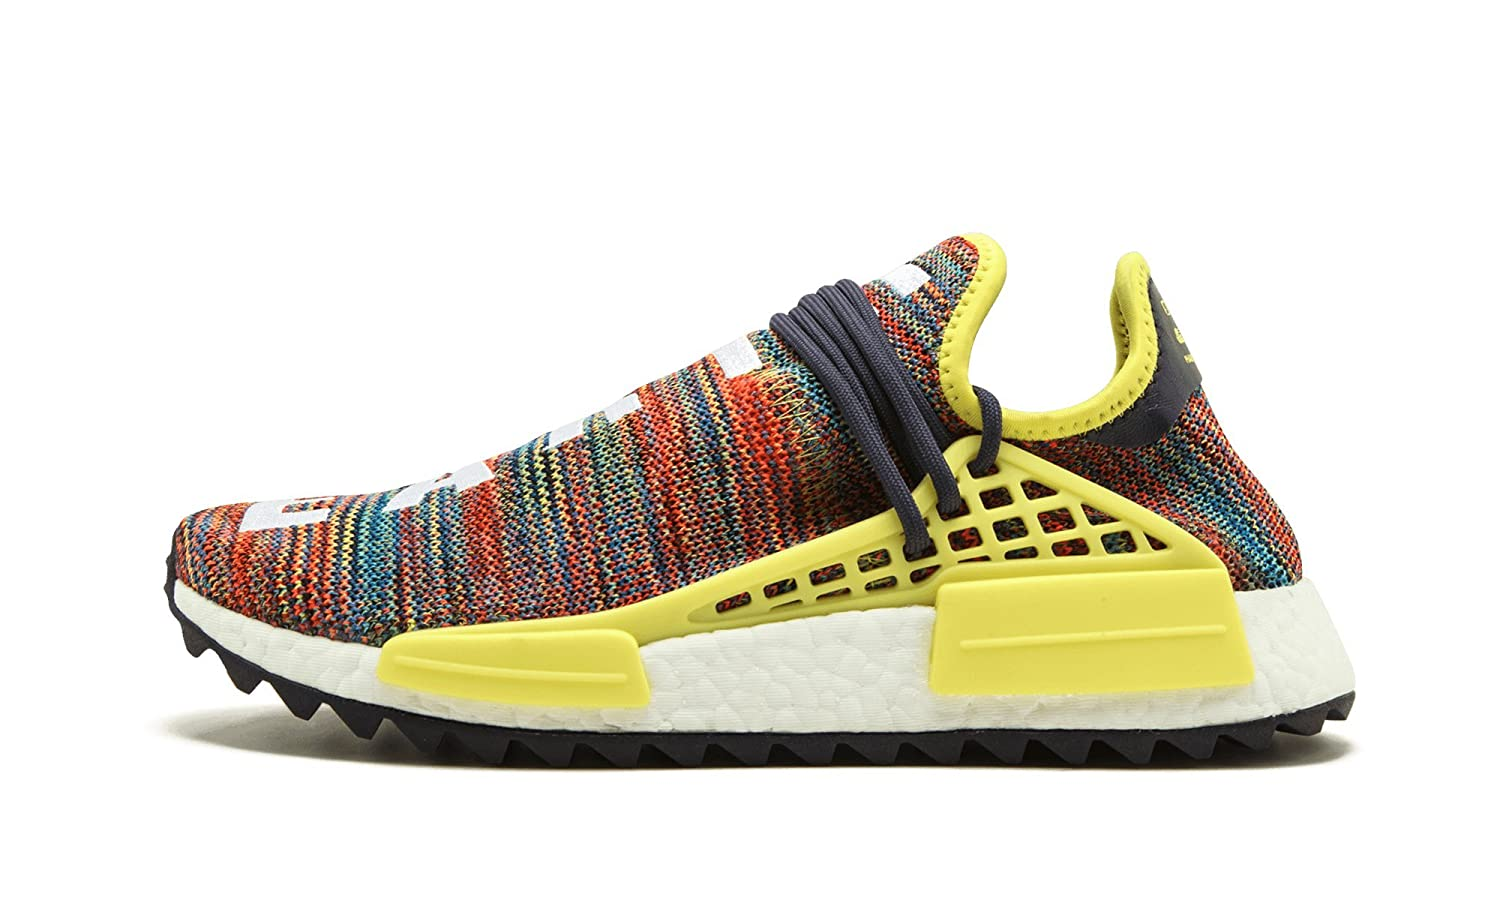 huge selection of d84f1 17f99 Amazon.com: Adidas PW Human Race NMD TR - AC7360: Shoes